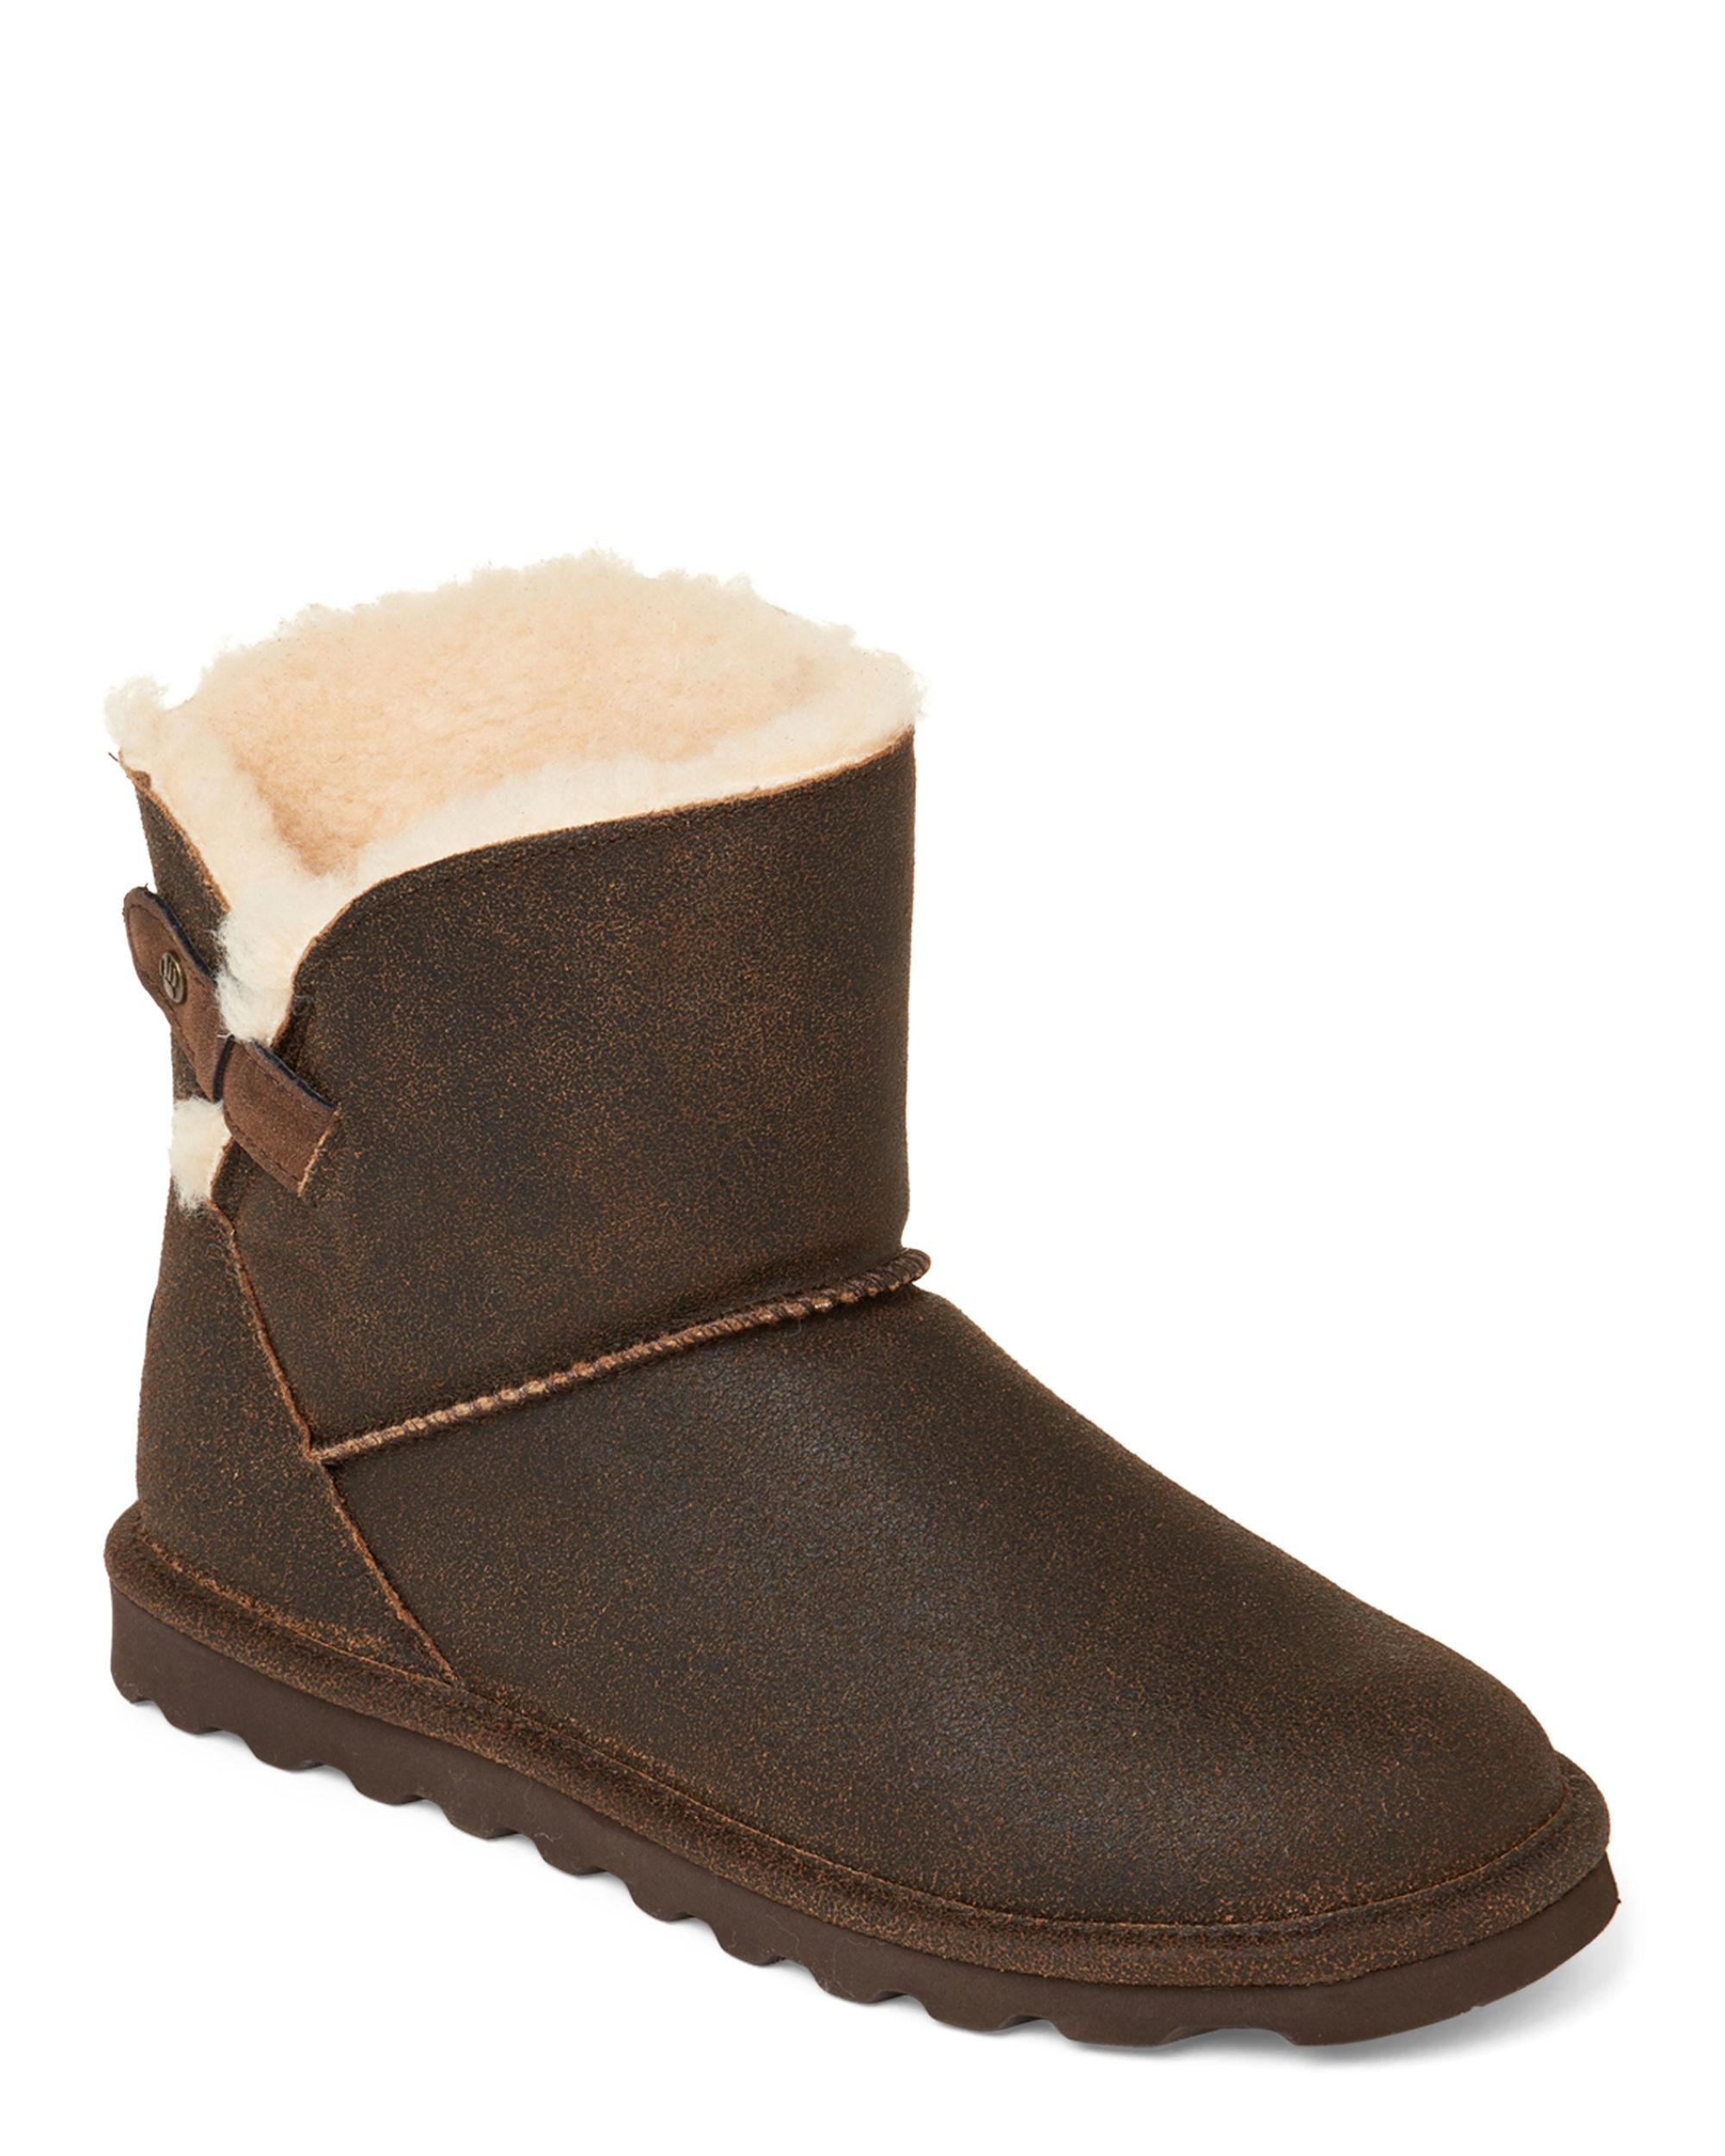 0ef0f35e3bf Lyst - BEARPAW Chestnut Margaery Real Fur & Suede Boots in Brown